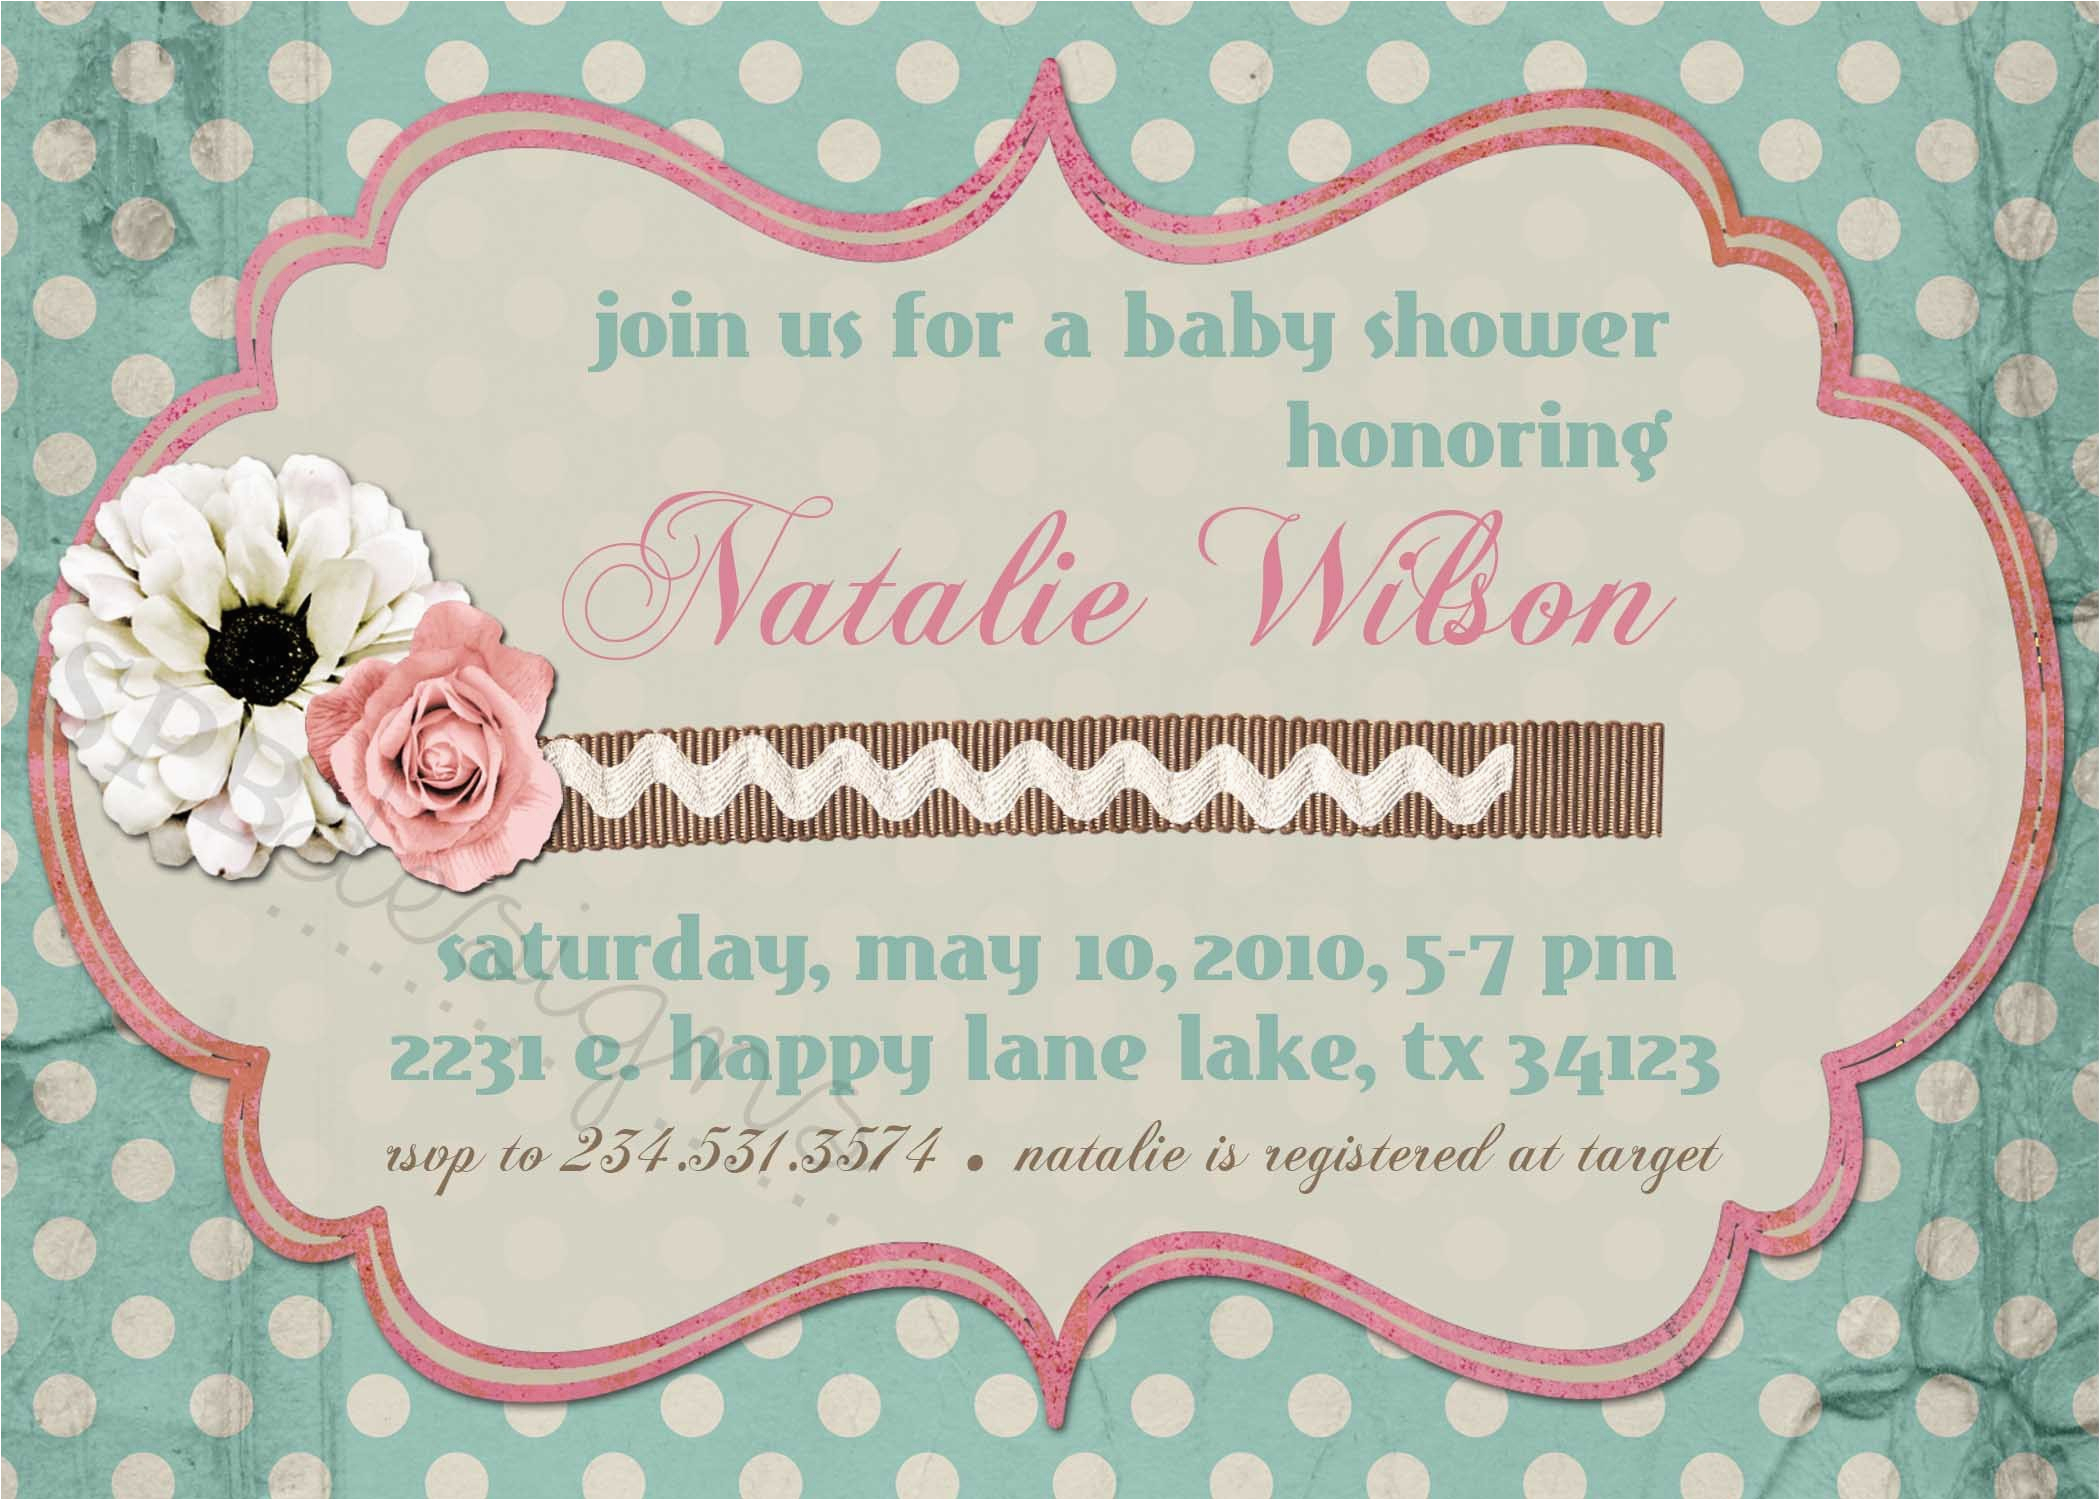 Shabby Chic Birthday Invitation Templates Free Birthdaybuzz